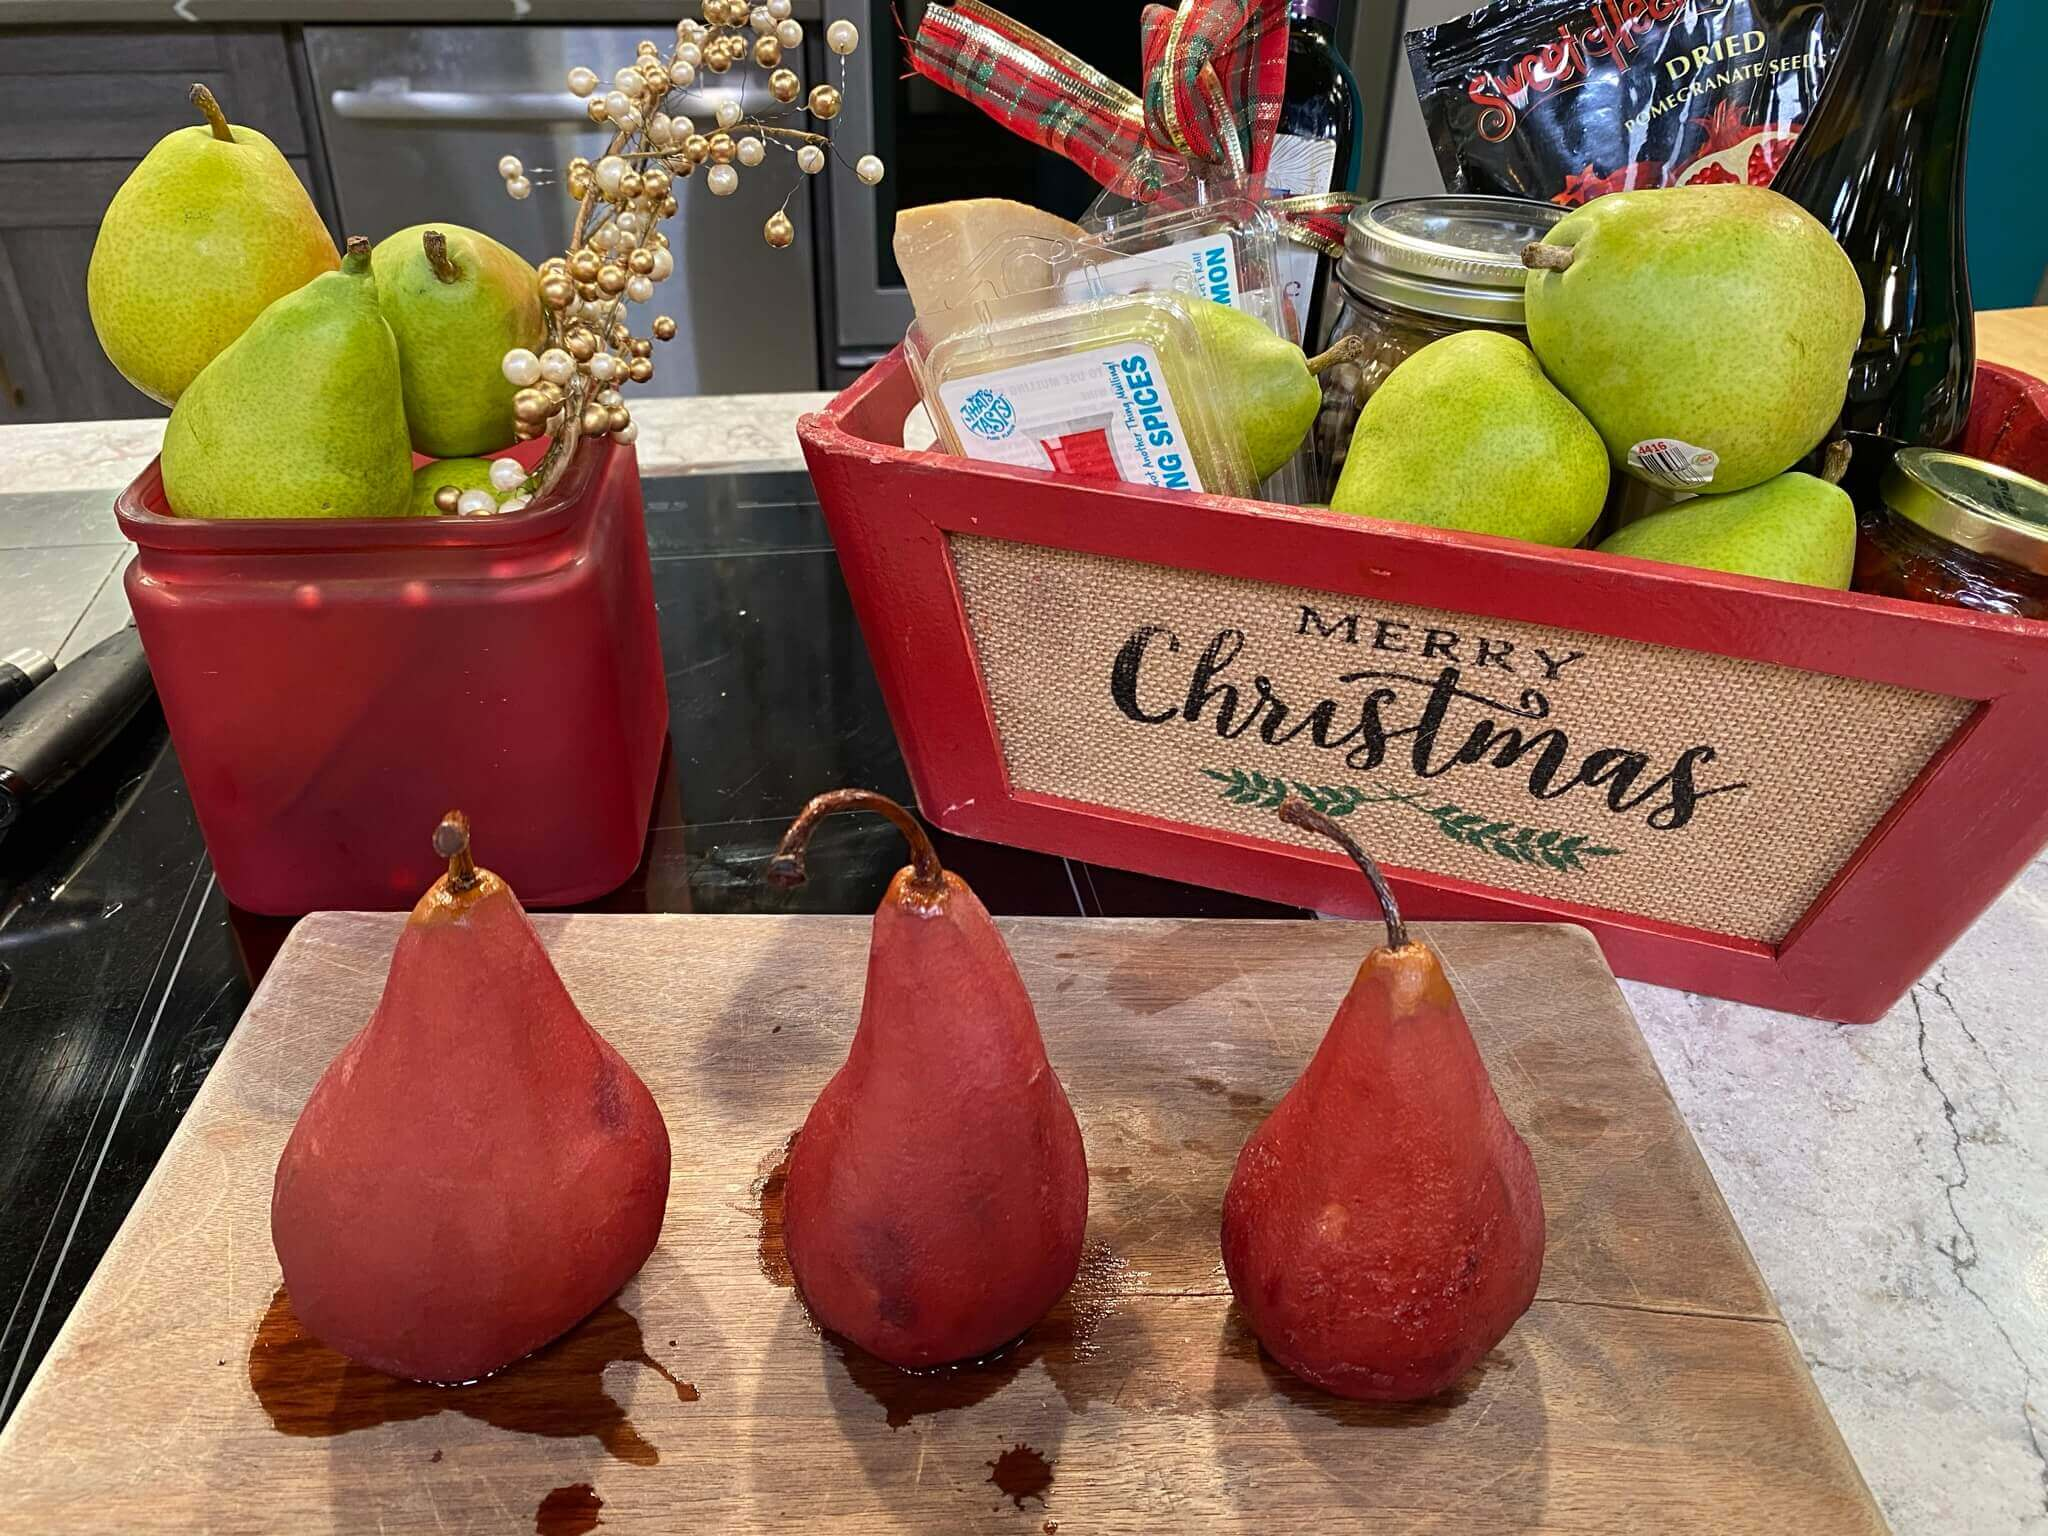 Pears are a great way to celebrate the holidays with fresh produce.